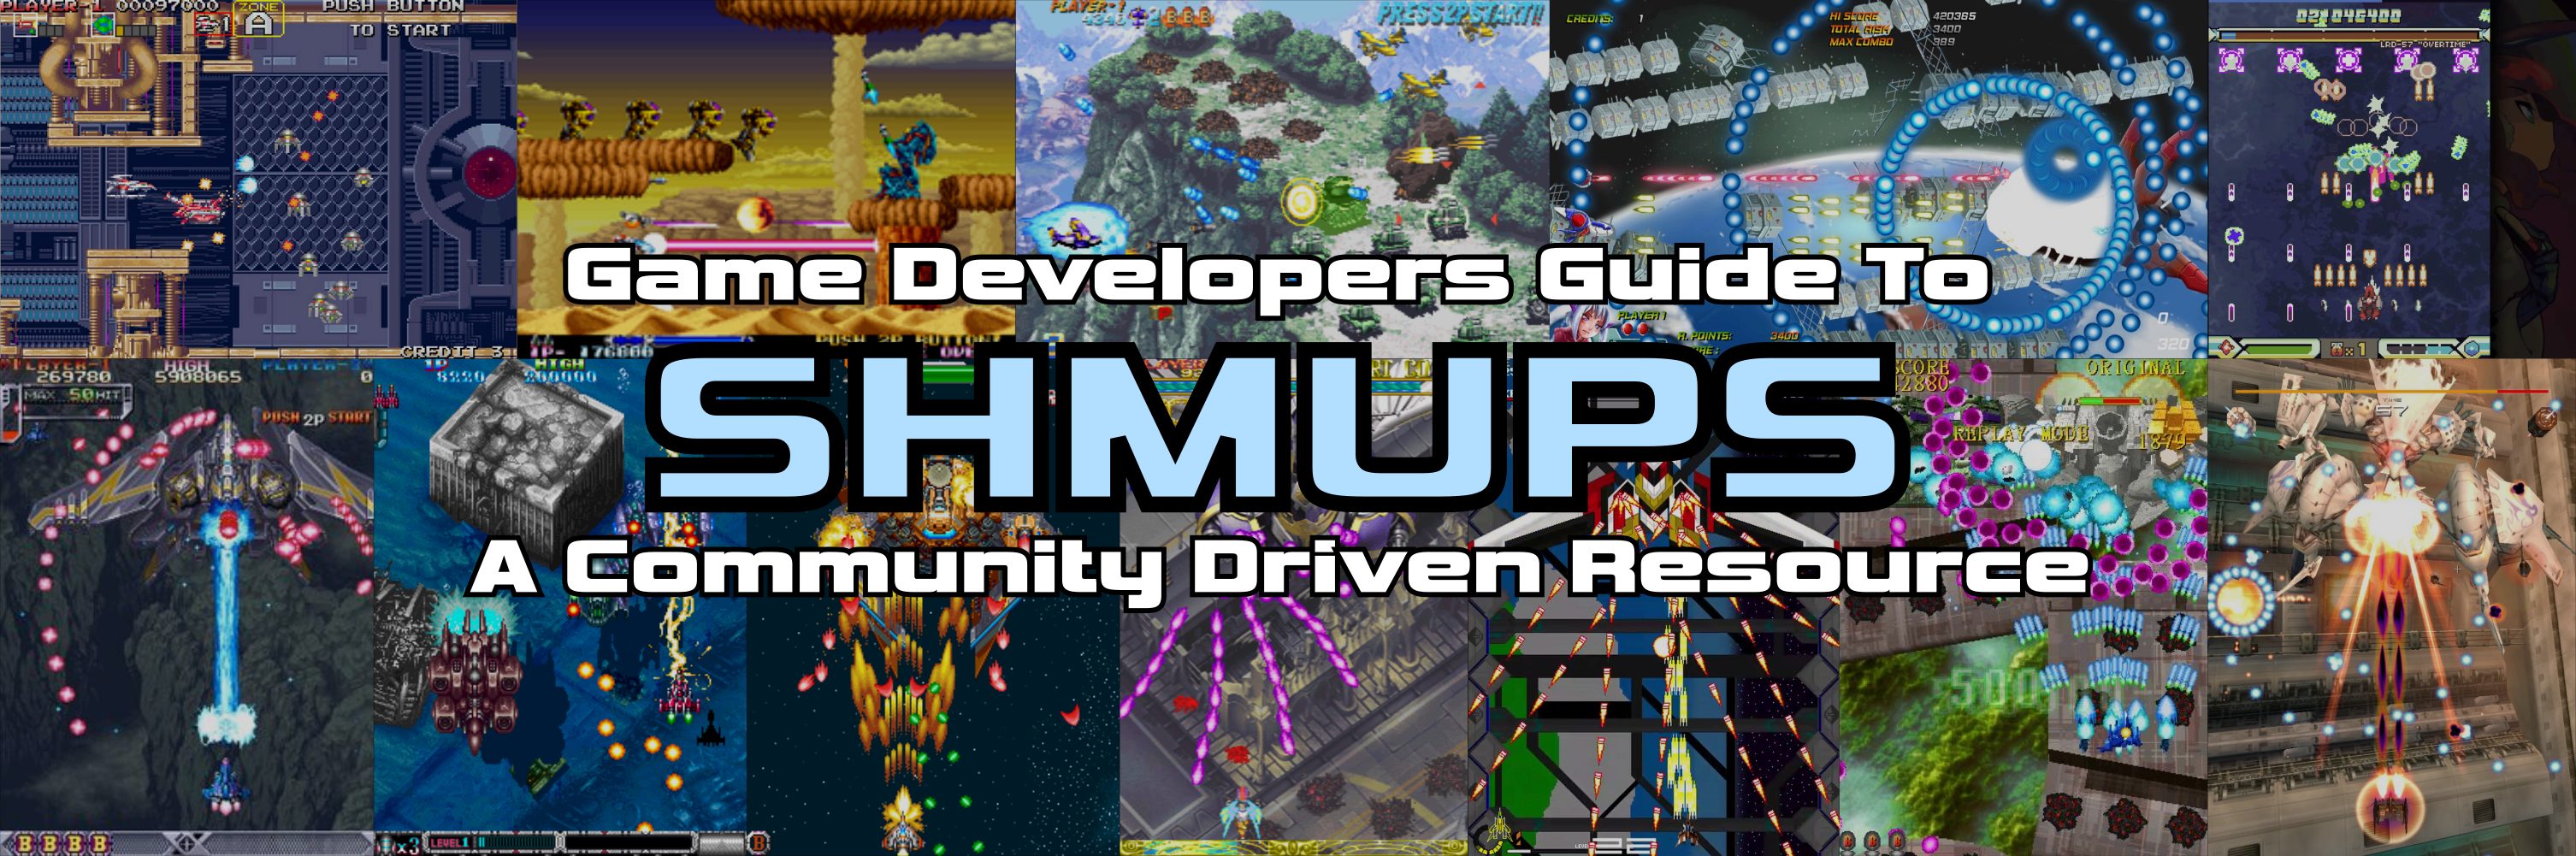 UPDATED | Game Developers Guide to SHMUPS: A Community Driven Resource